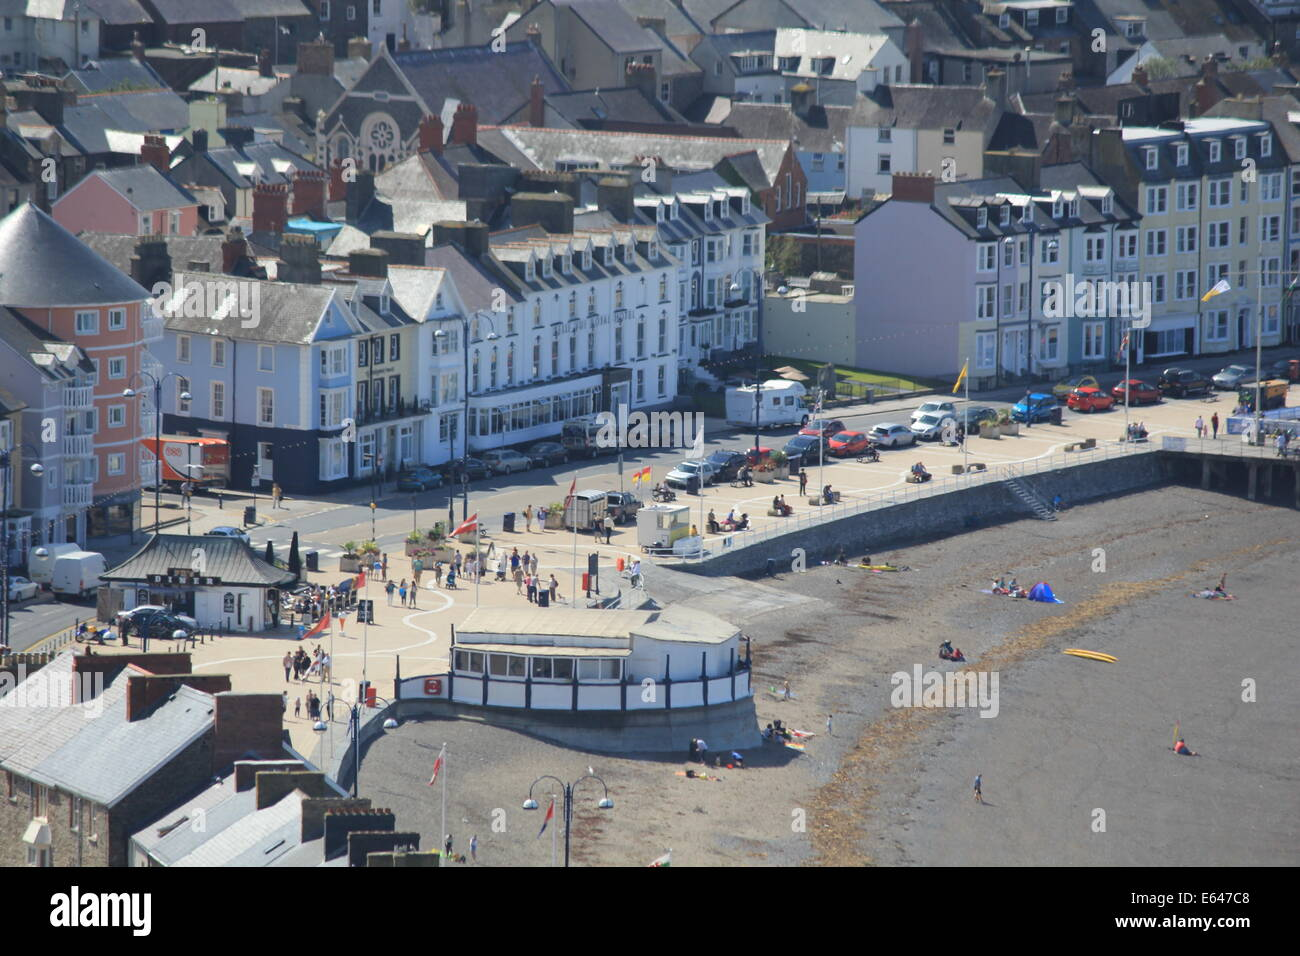 Aberystwyth seafront & bandstand Stock Photo